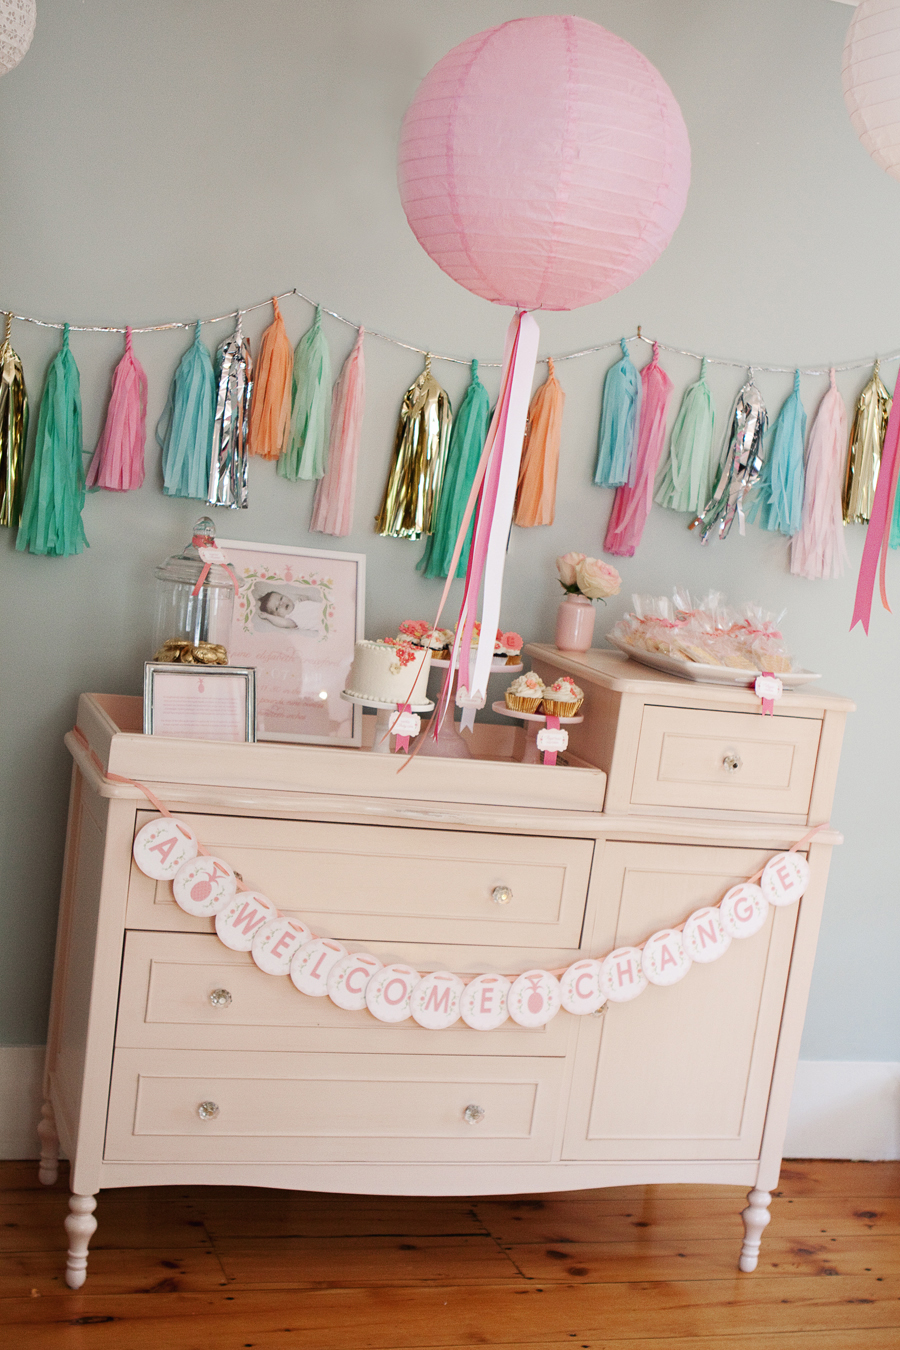 Baby Shower Ideas For The Summer ~ Kara s party ideas summer sip see baby shower